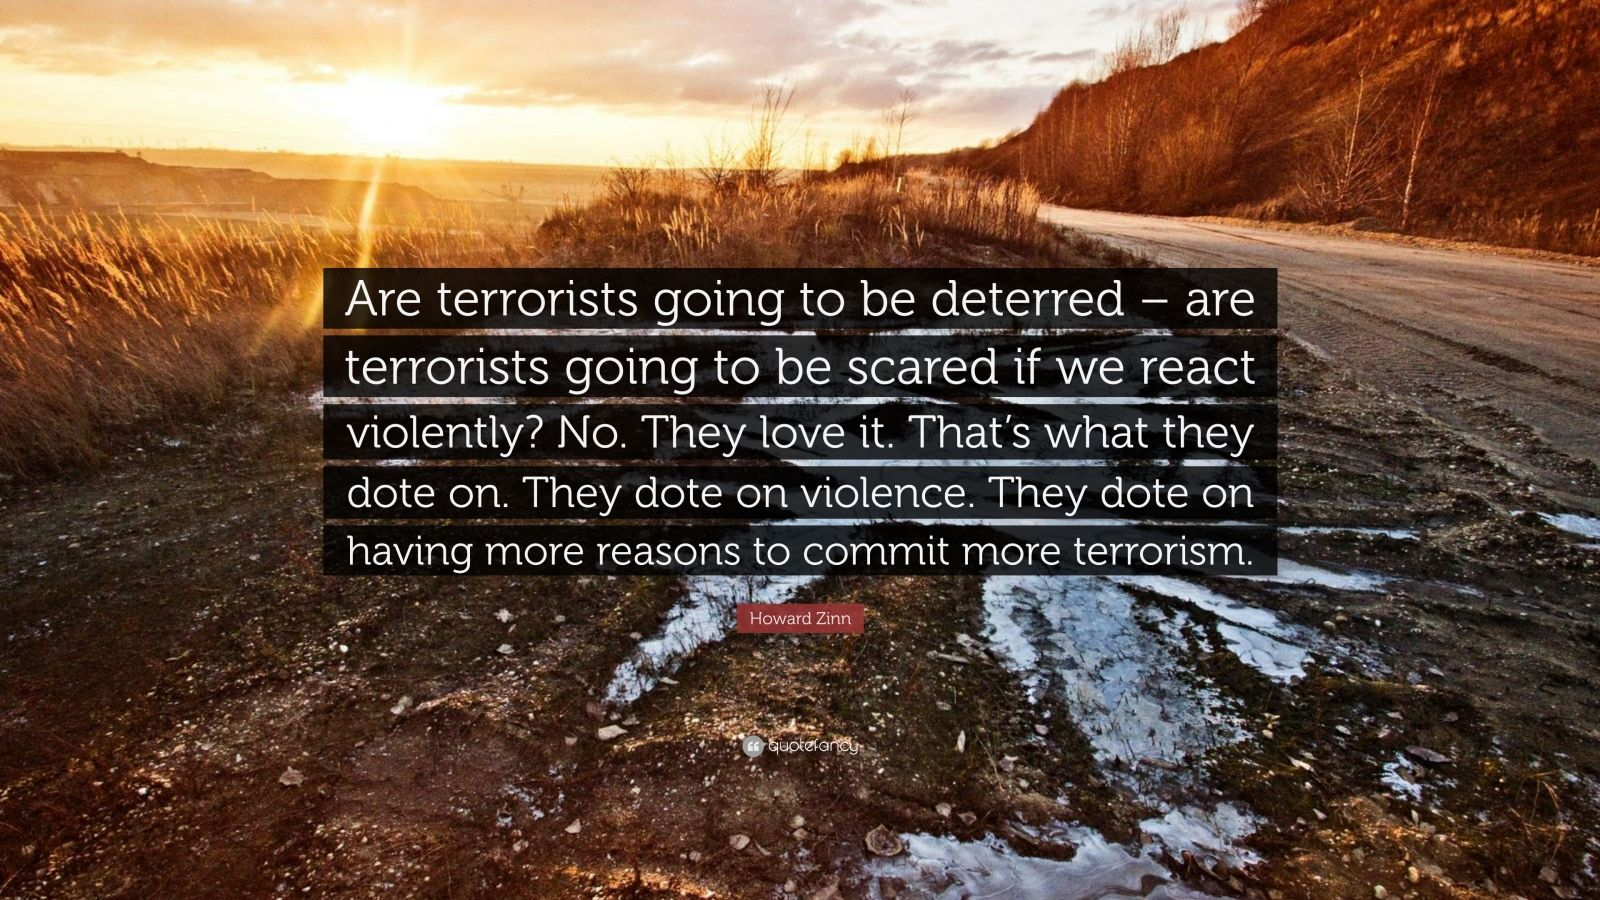 """Howard Zinn Quote: """"Are terrorists going to be deterred – are terrorists going to be scared if we react violently? No. They love it. That's what they dote on. They dote on violence. They dote on having more reasons to commit more terrorism."""""""